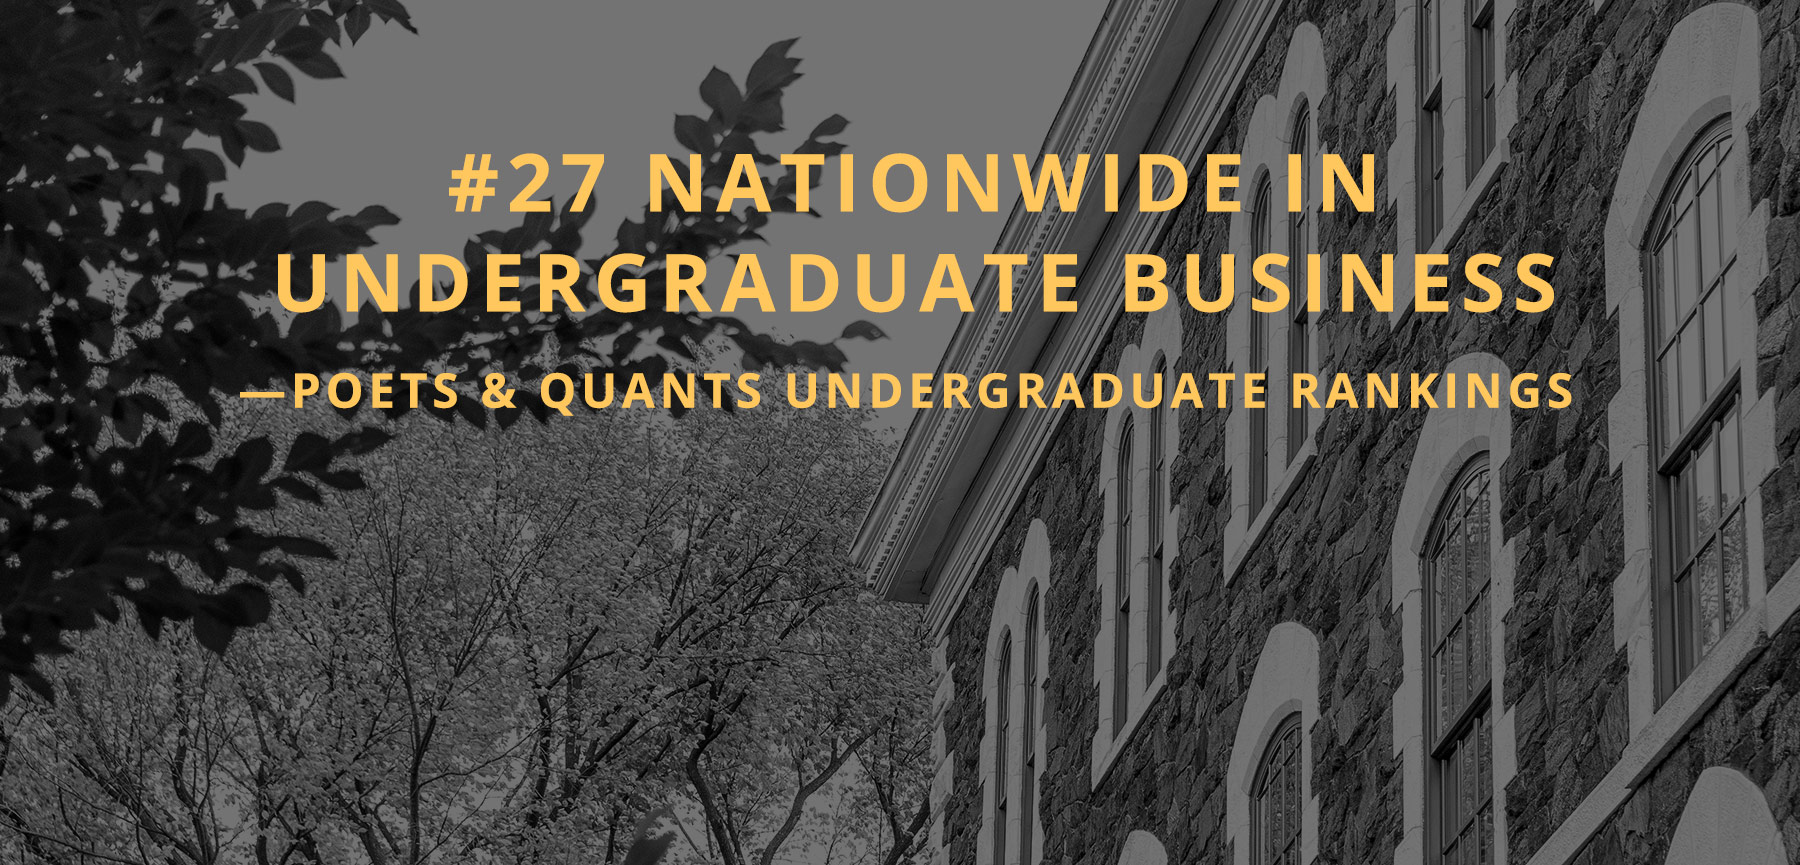 #27 nationwide in undergraduate business